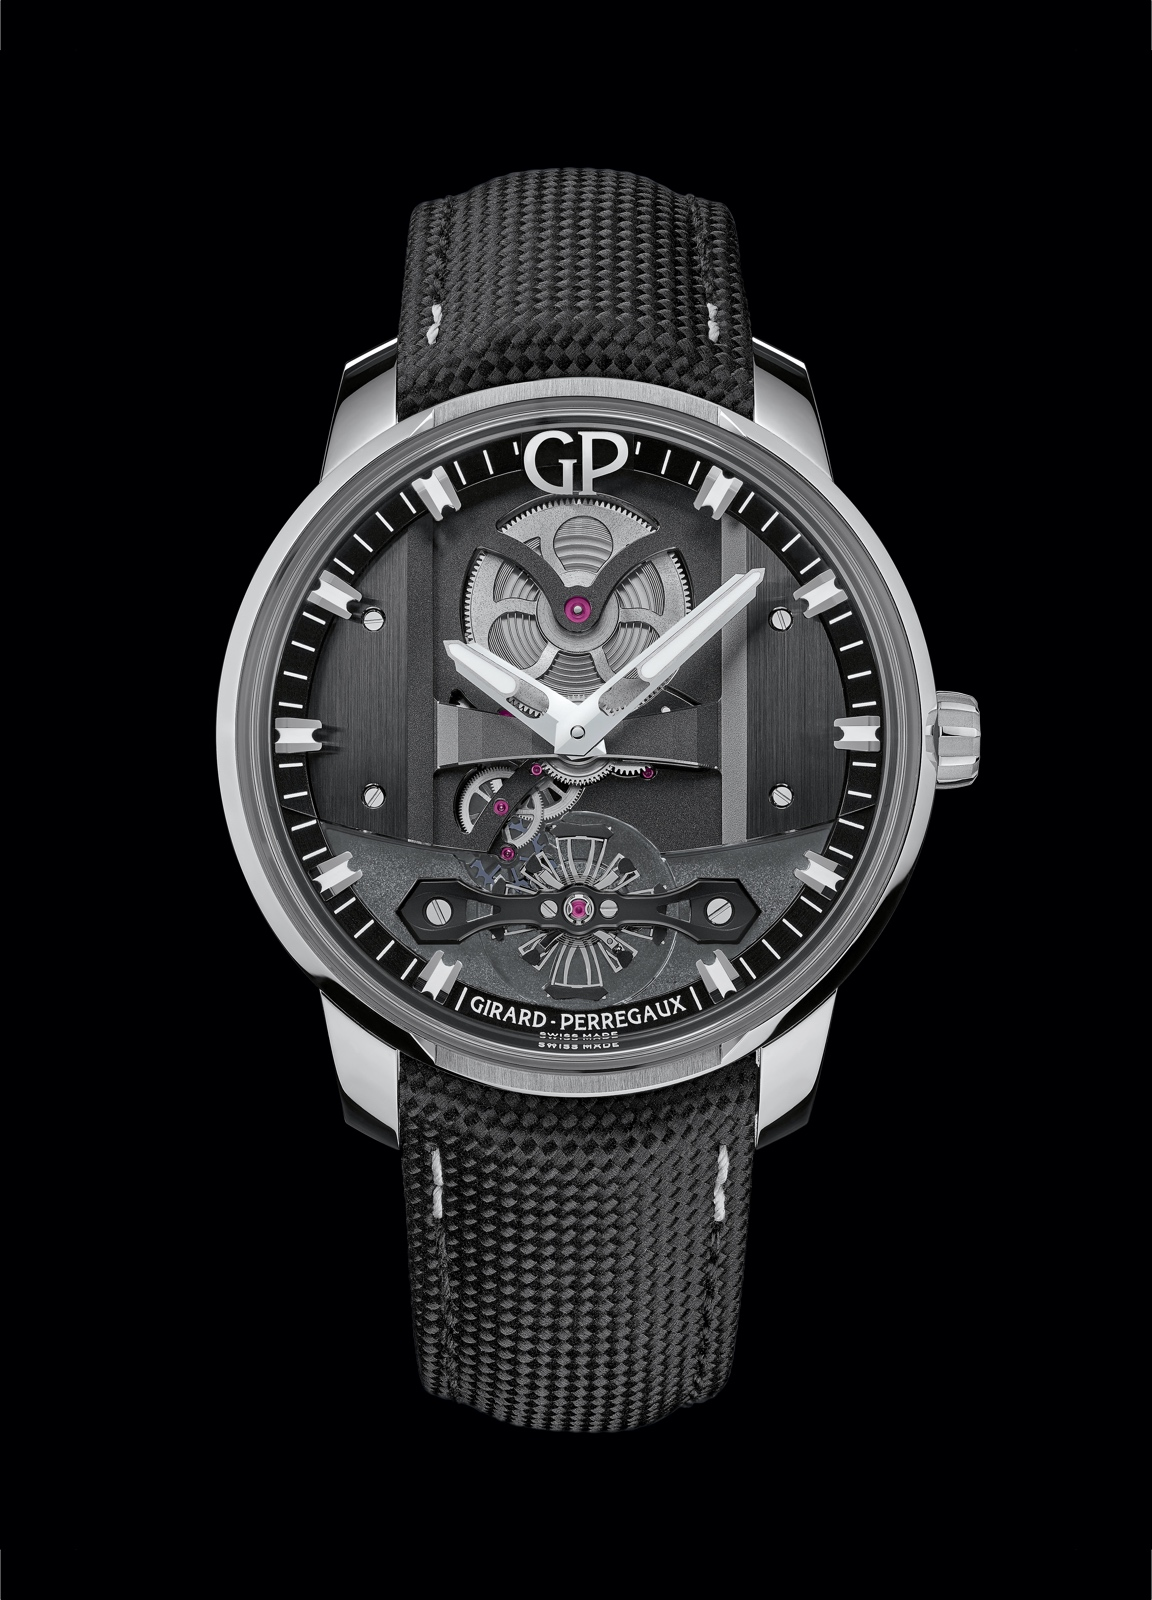 Girard-Perregaux en los Geneva Watch Days - Free Bridge